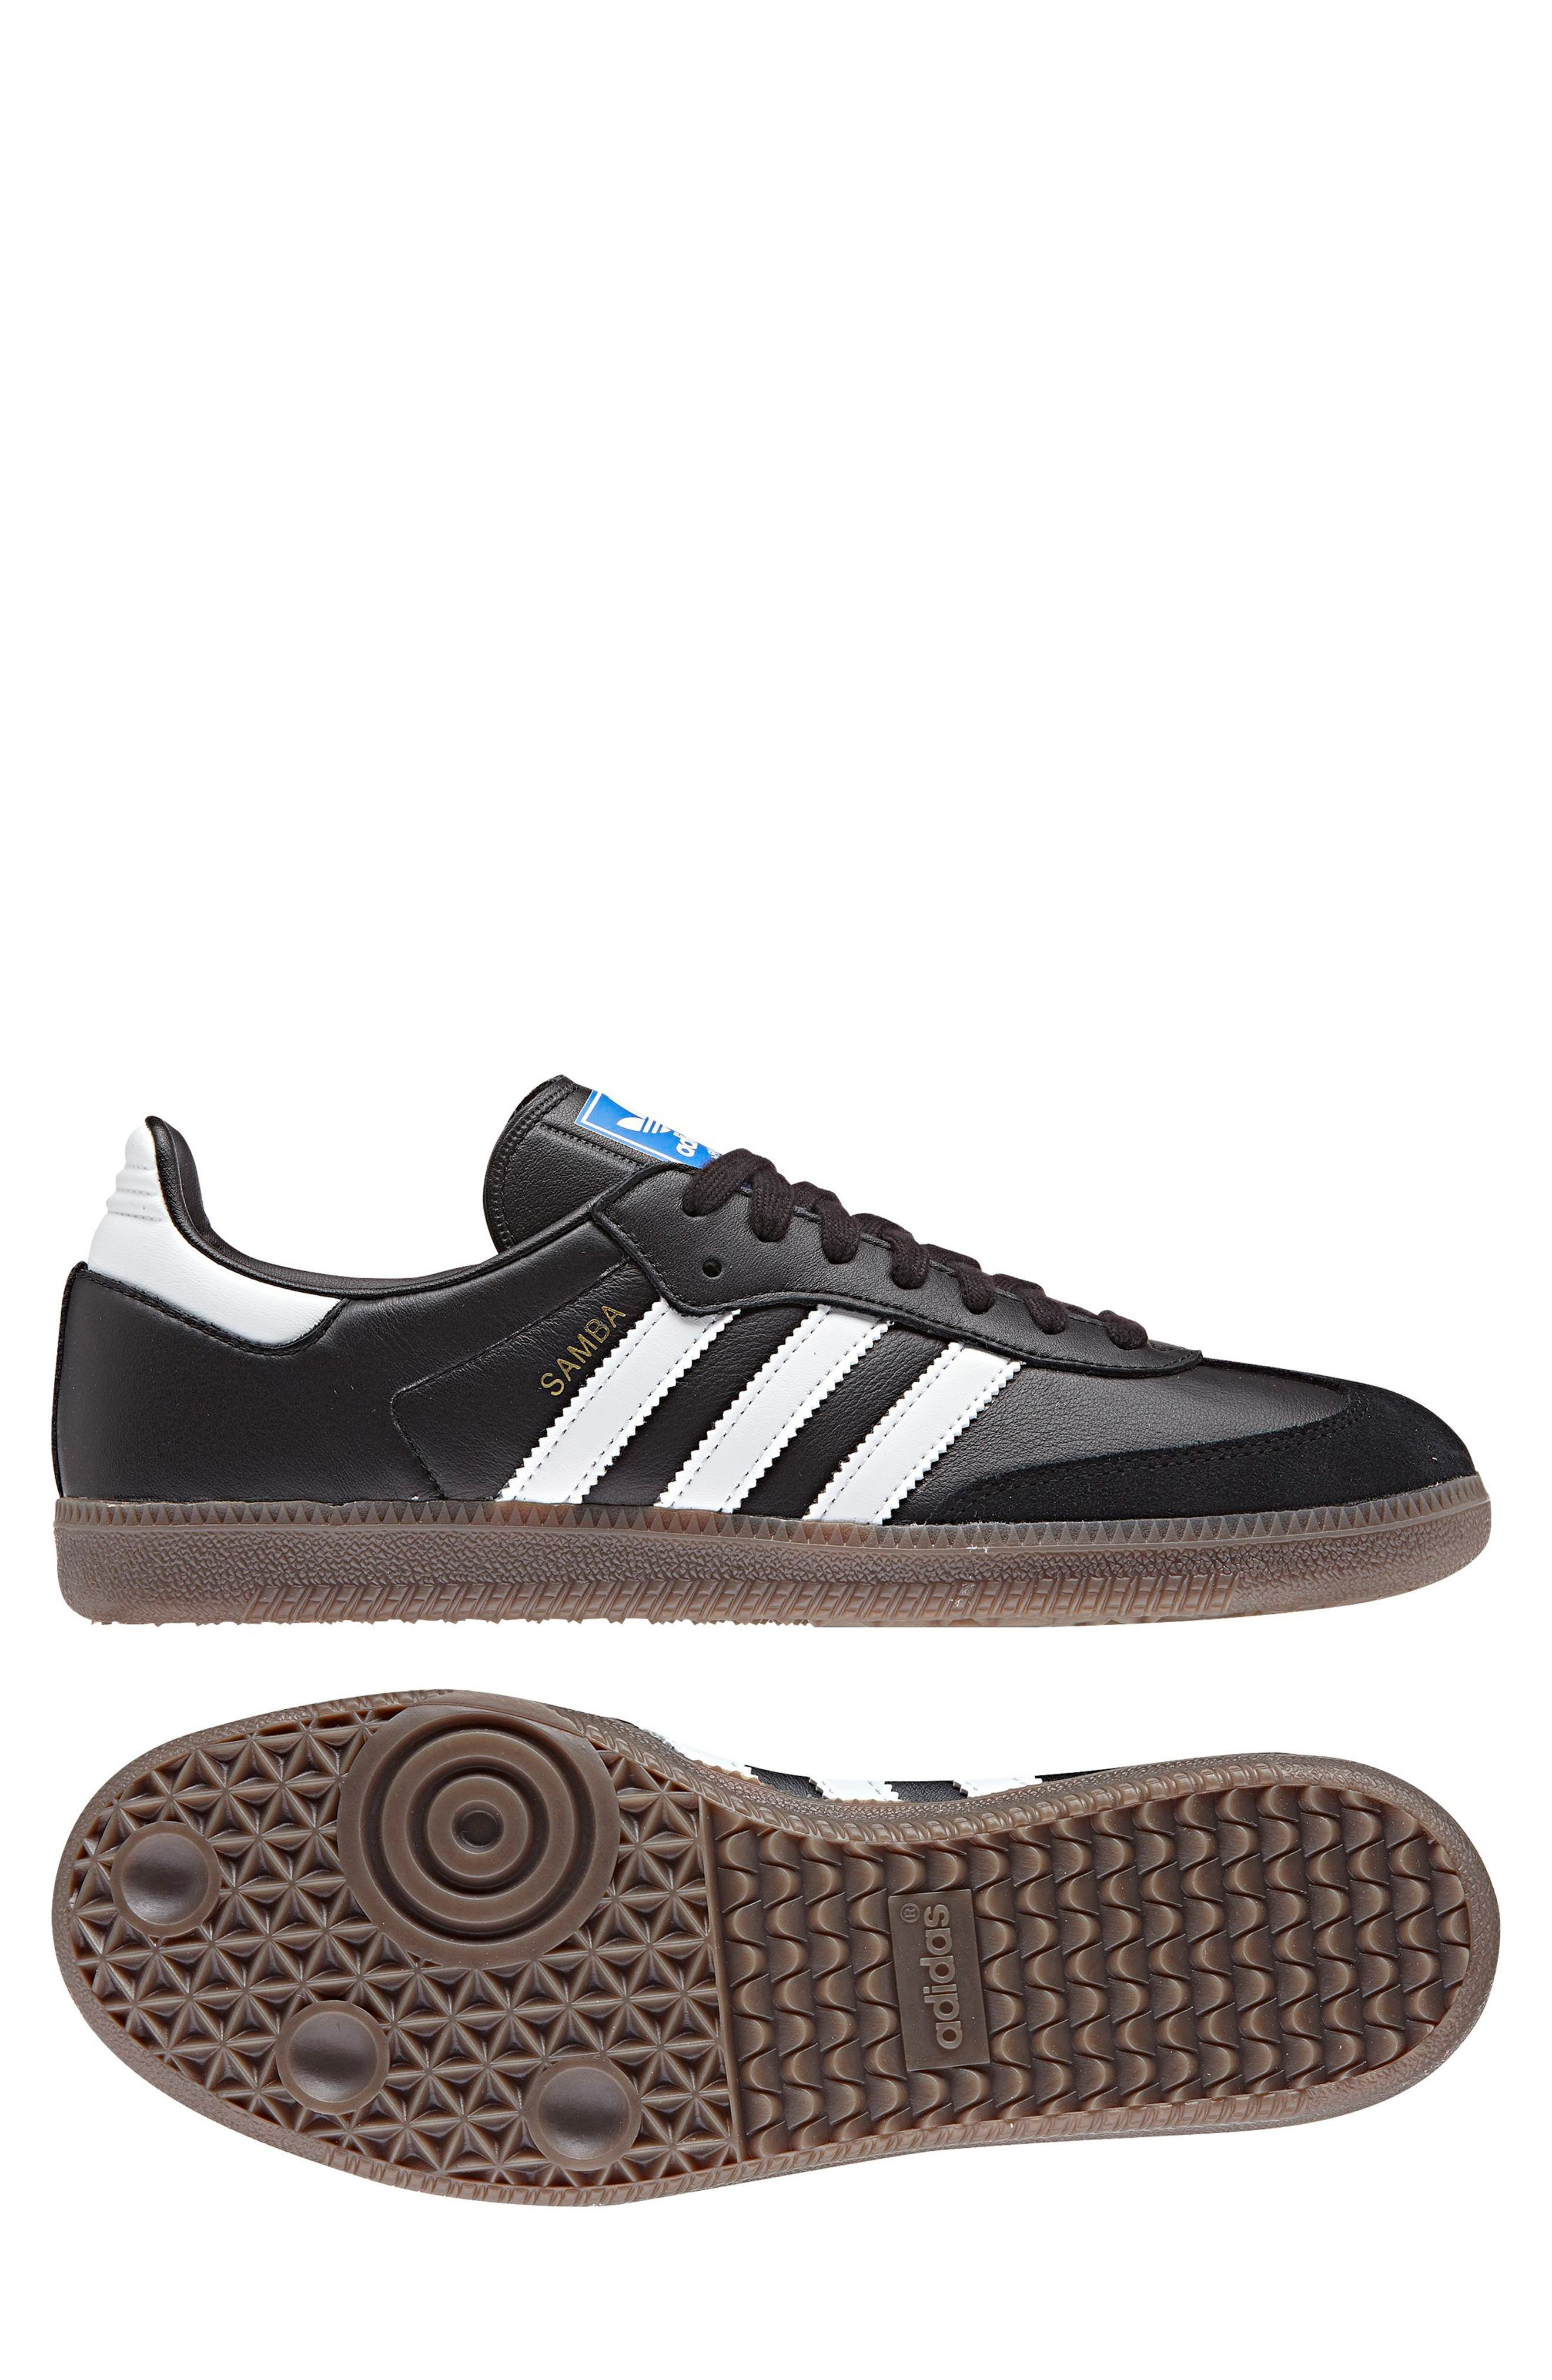 ADIDAS, Samba OG Sneaker, Alternate thumbnail 5, color, BLACK/ WHITE/ GUM